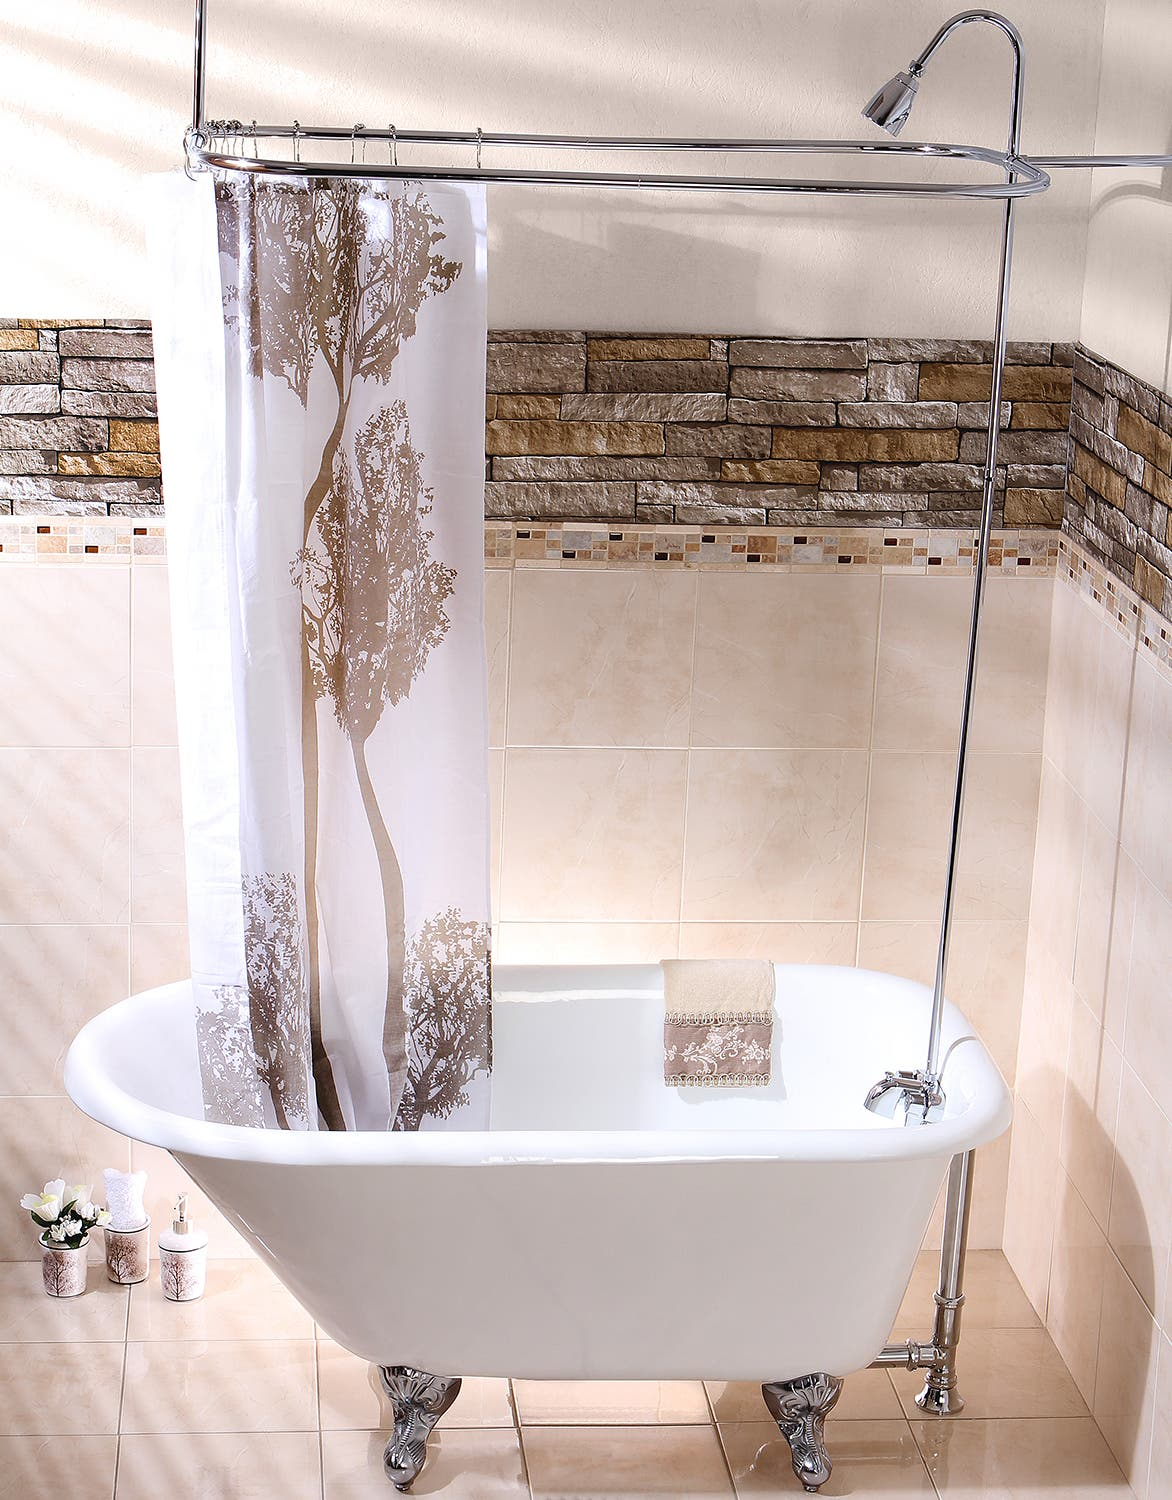 Bathroom Renovations Kingston Ontario: How To Have A Cohesive Bedroom And Bathroom Design